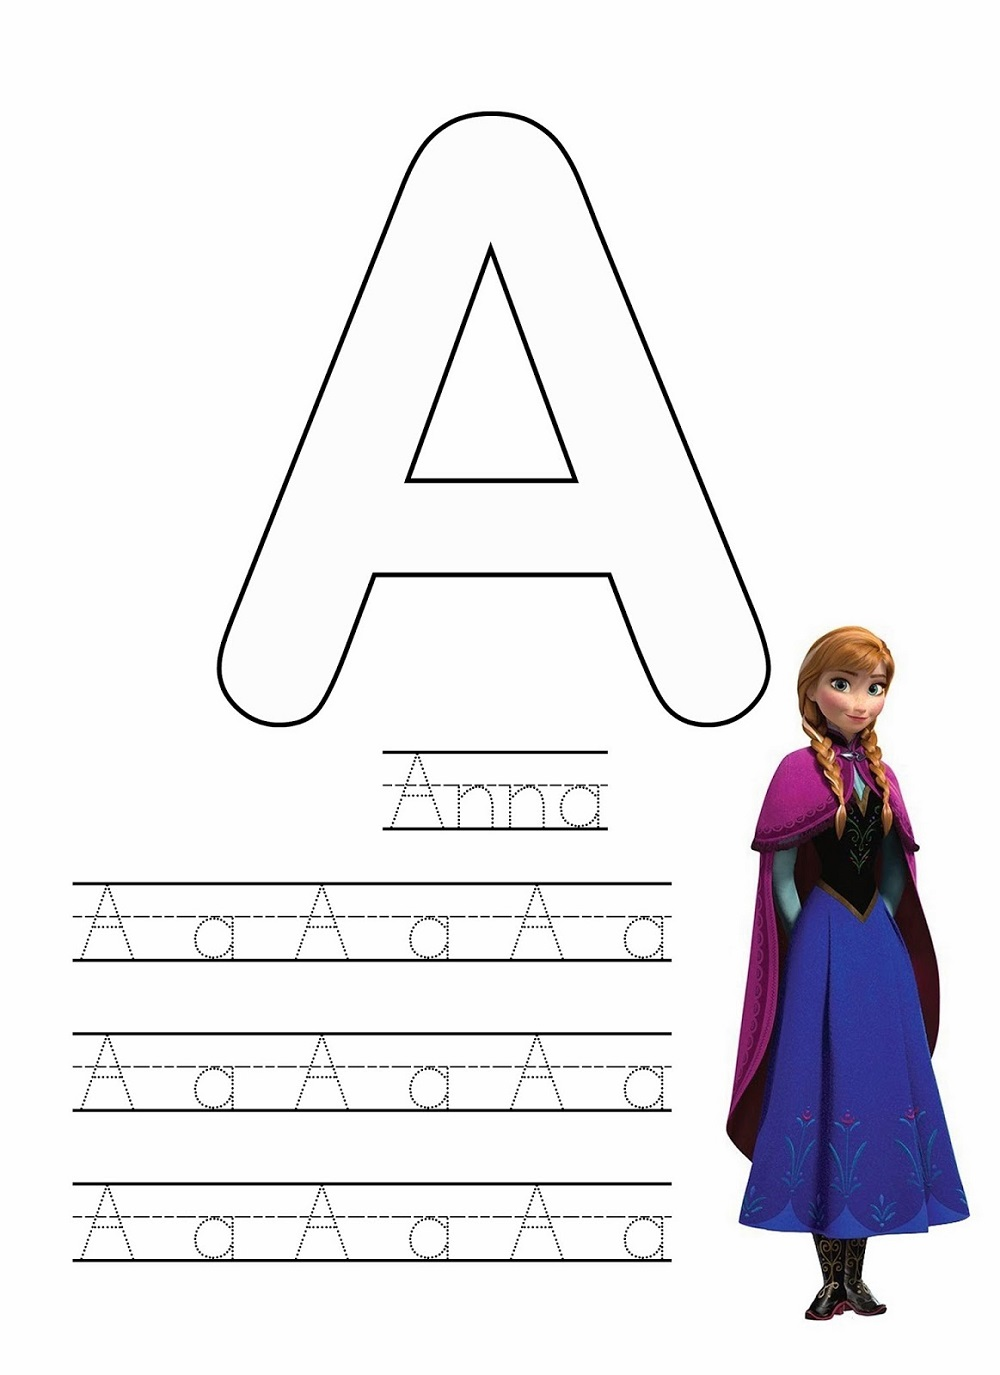 frozen worksheet printable letter A to trace